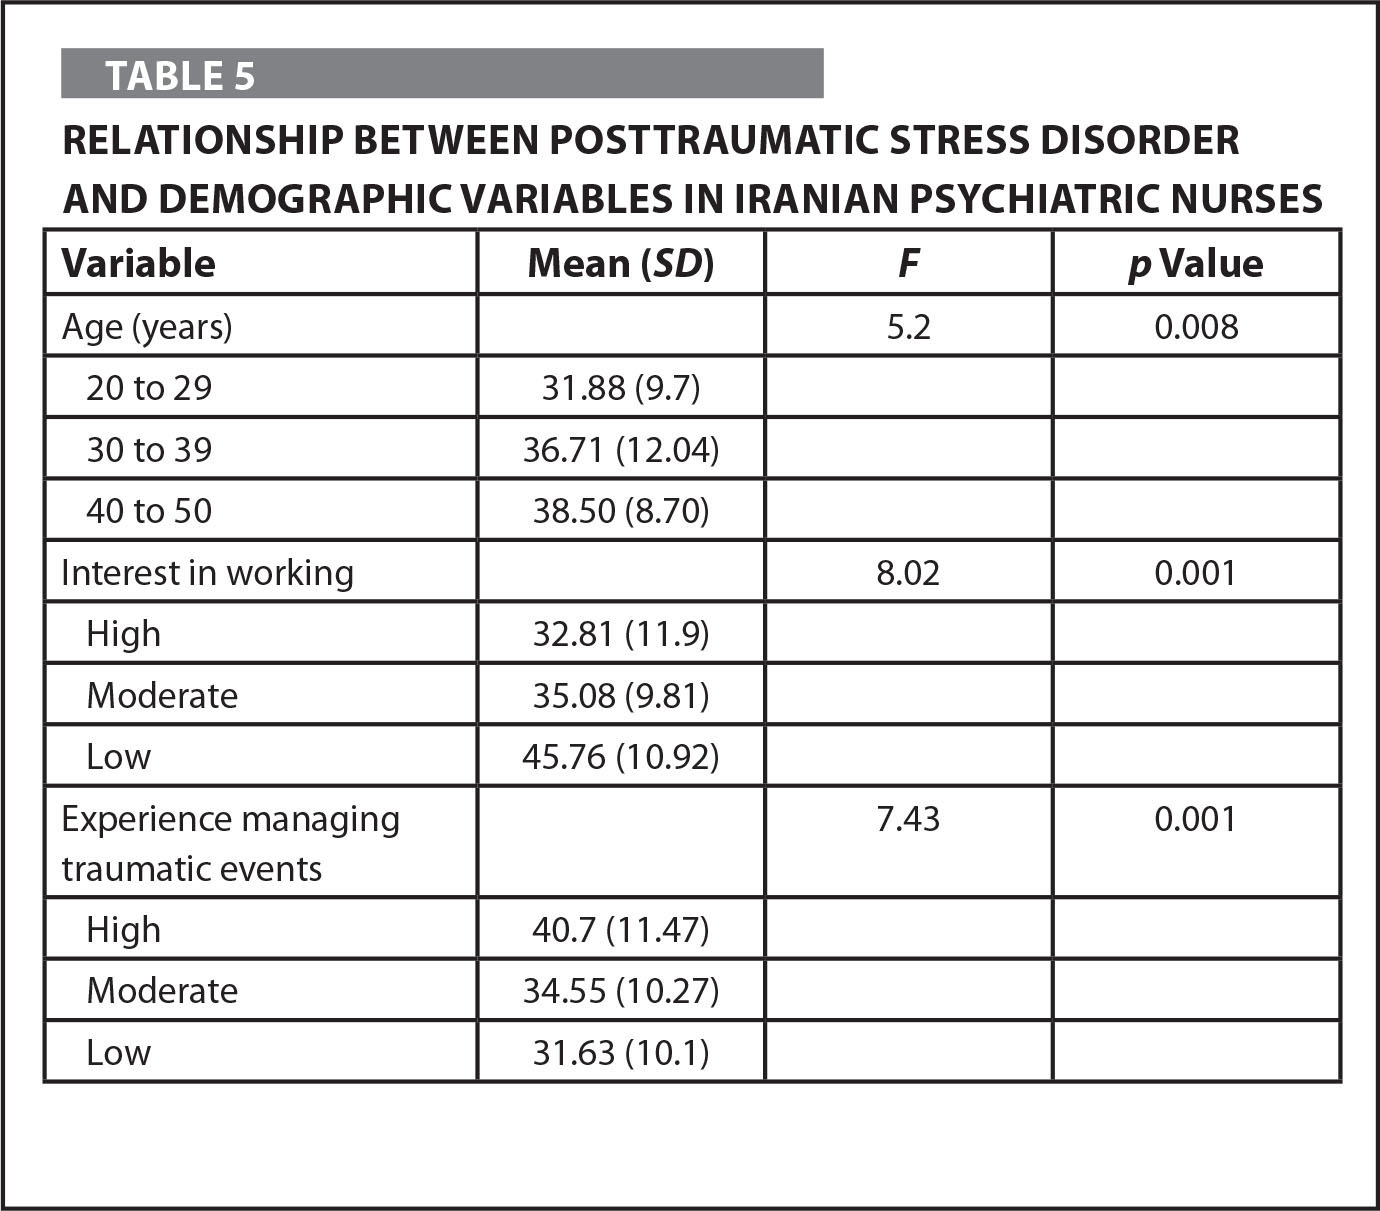 Relationship between Posttraumatic Stress Disorder and Demographic Variables in Iranian Psychiatric Nurses